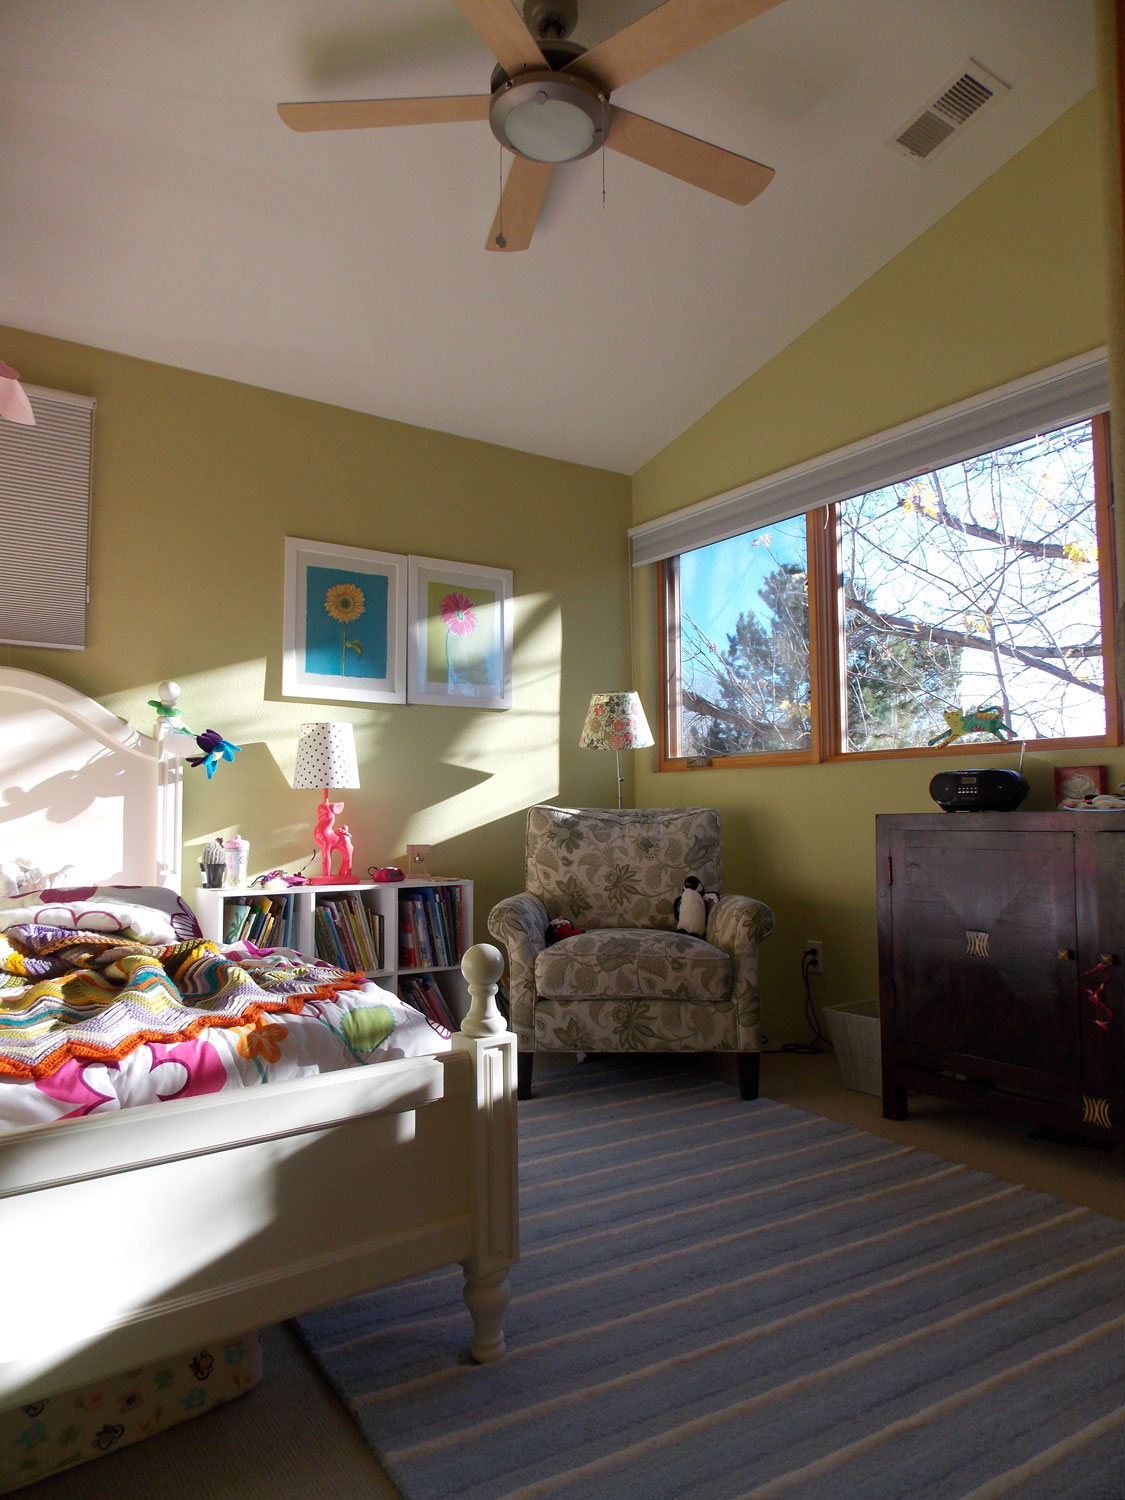 SOUTH-BOULDER-POP-TOP-KIDS-ROOM-WEB-OPT